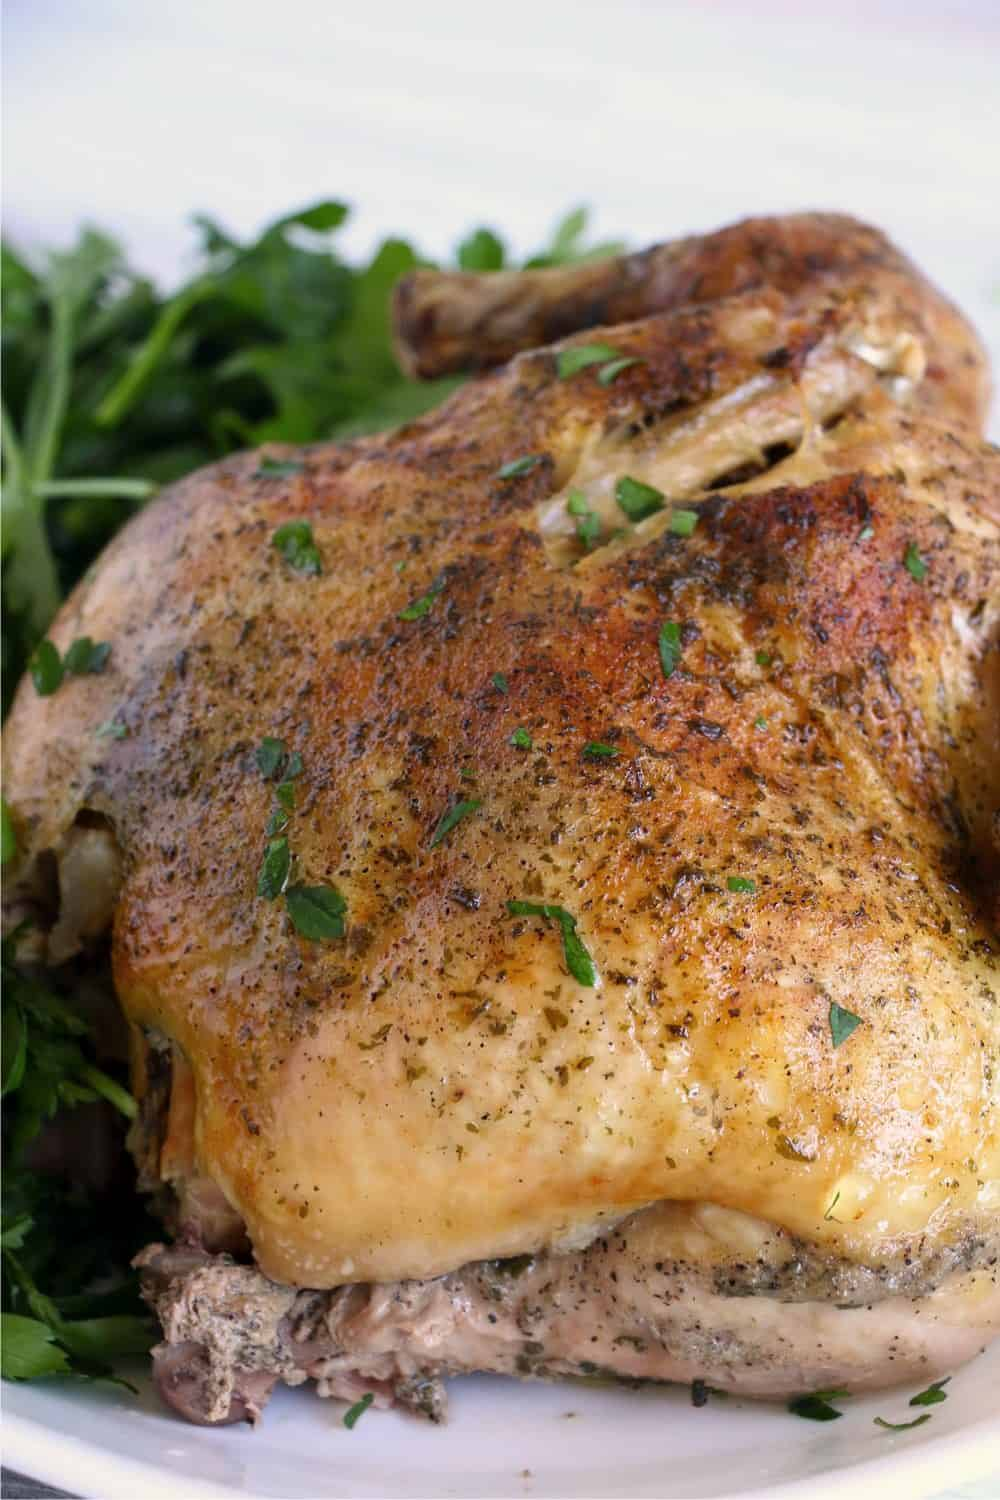 A cooked Ninja Foodie whole chicken with perfectly golden roasted skin